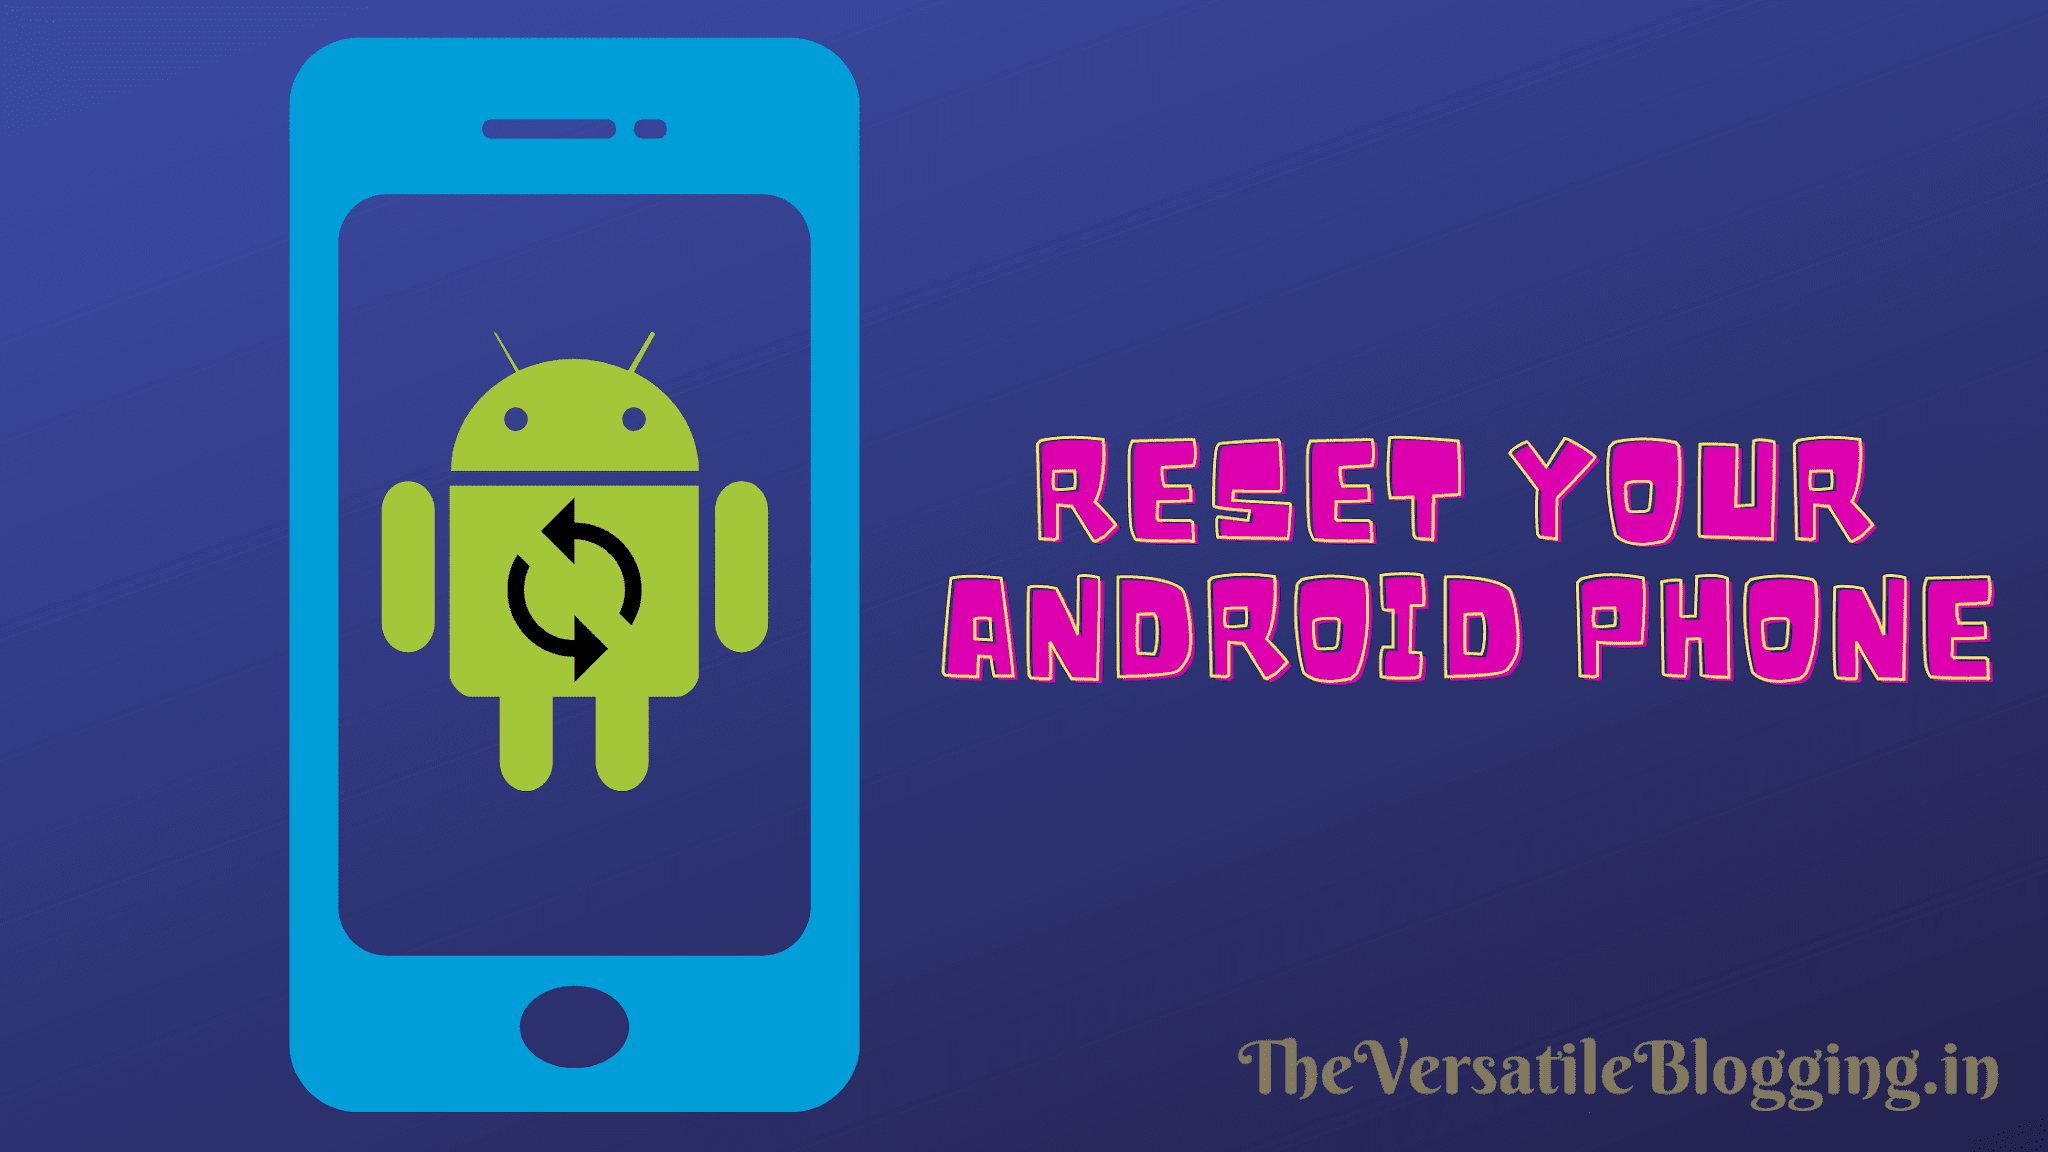 Factory Reset/Hard Reset Your Phone | TheVersatileBlogging.in